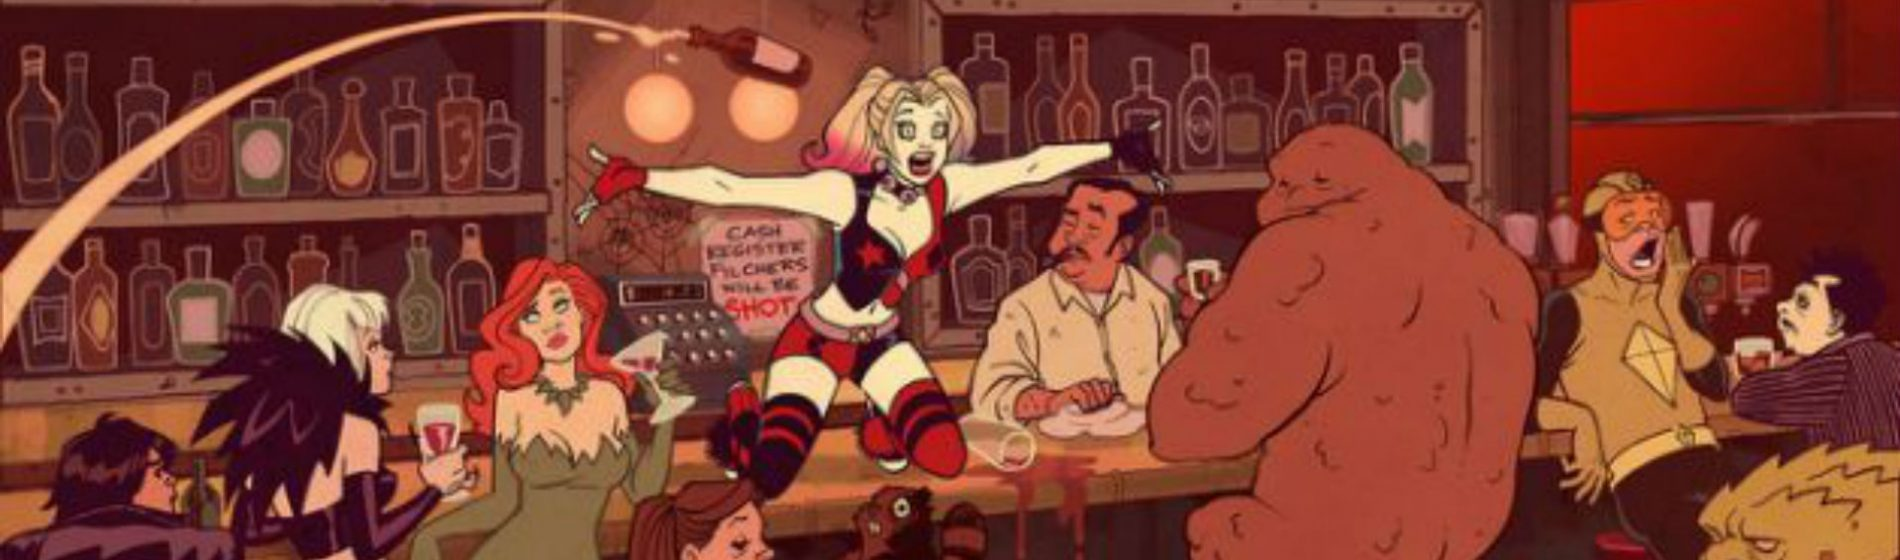 Harley-Quinn-Gang-at-a-Bar-Feature